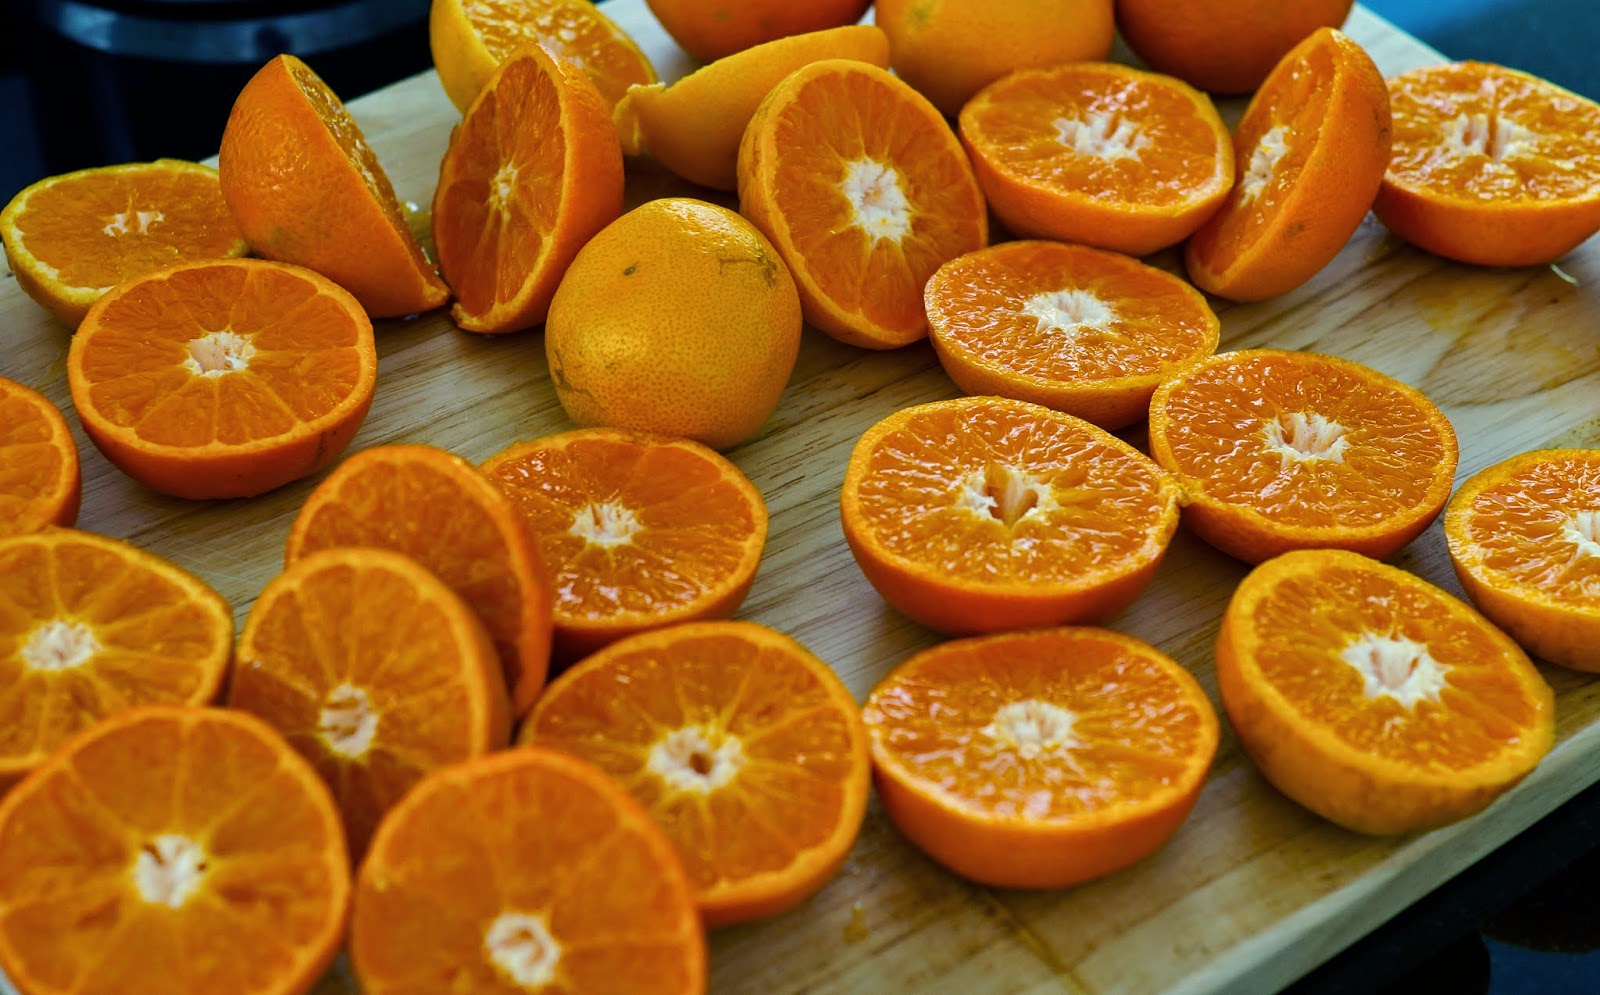 freshly squeezed orange